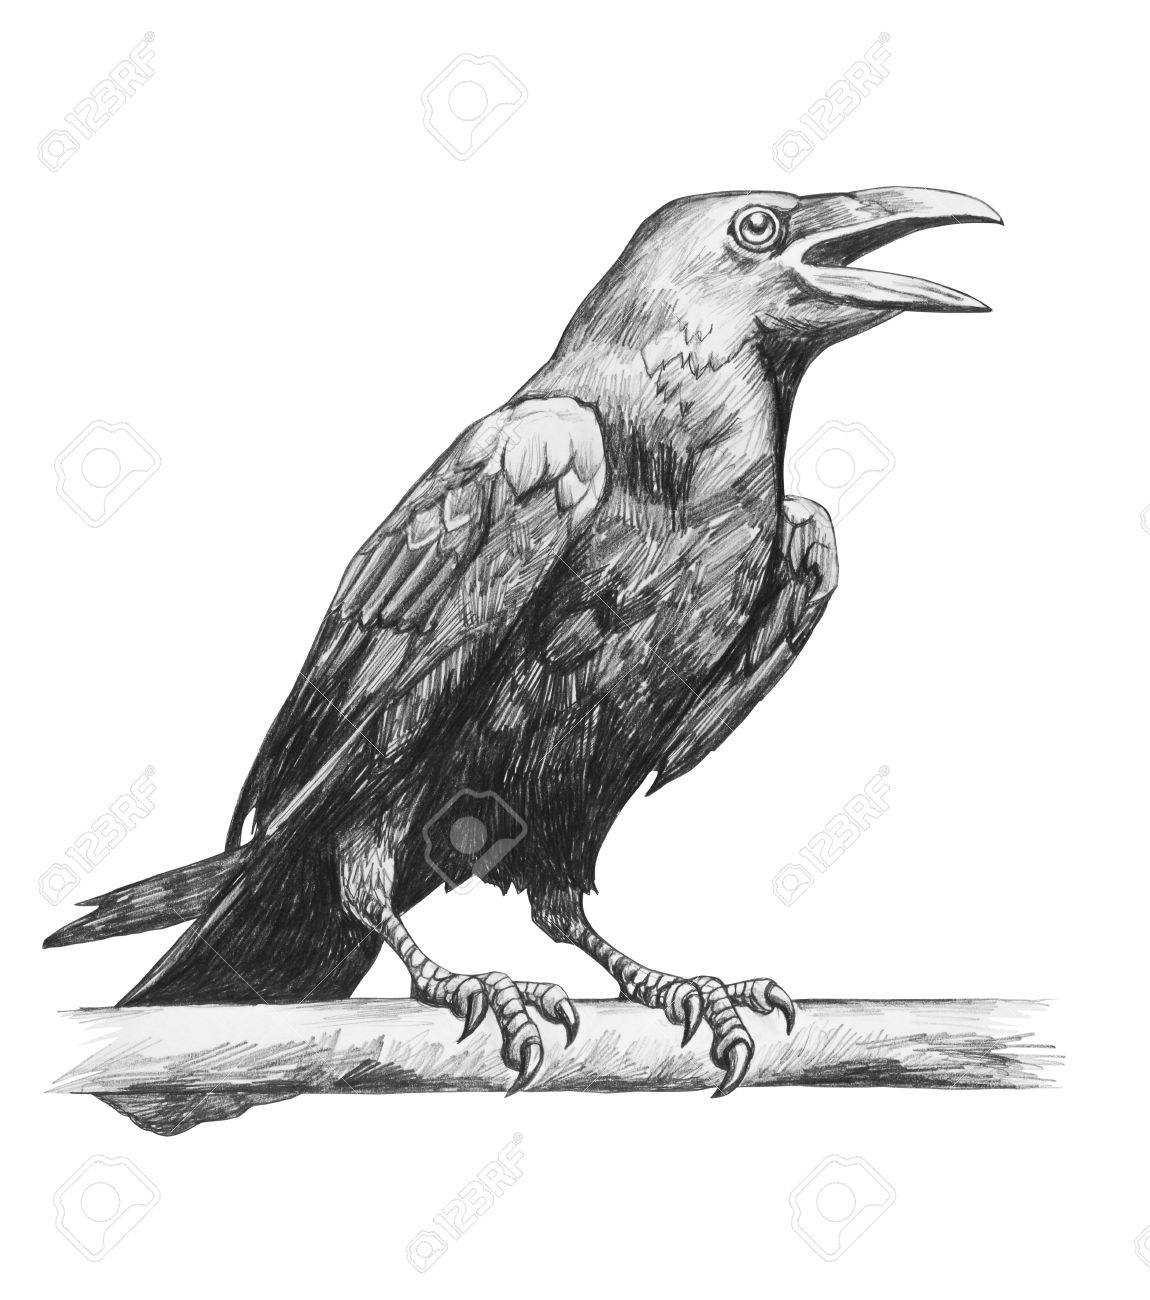 Pencil drawing of raven isolated on white background